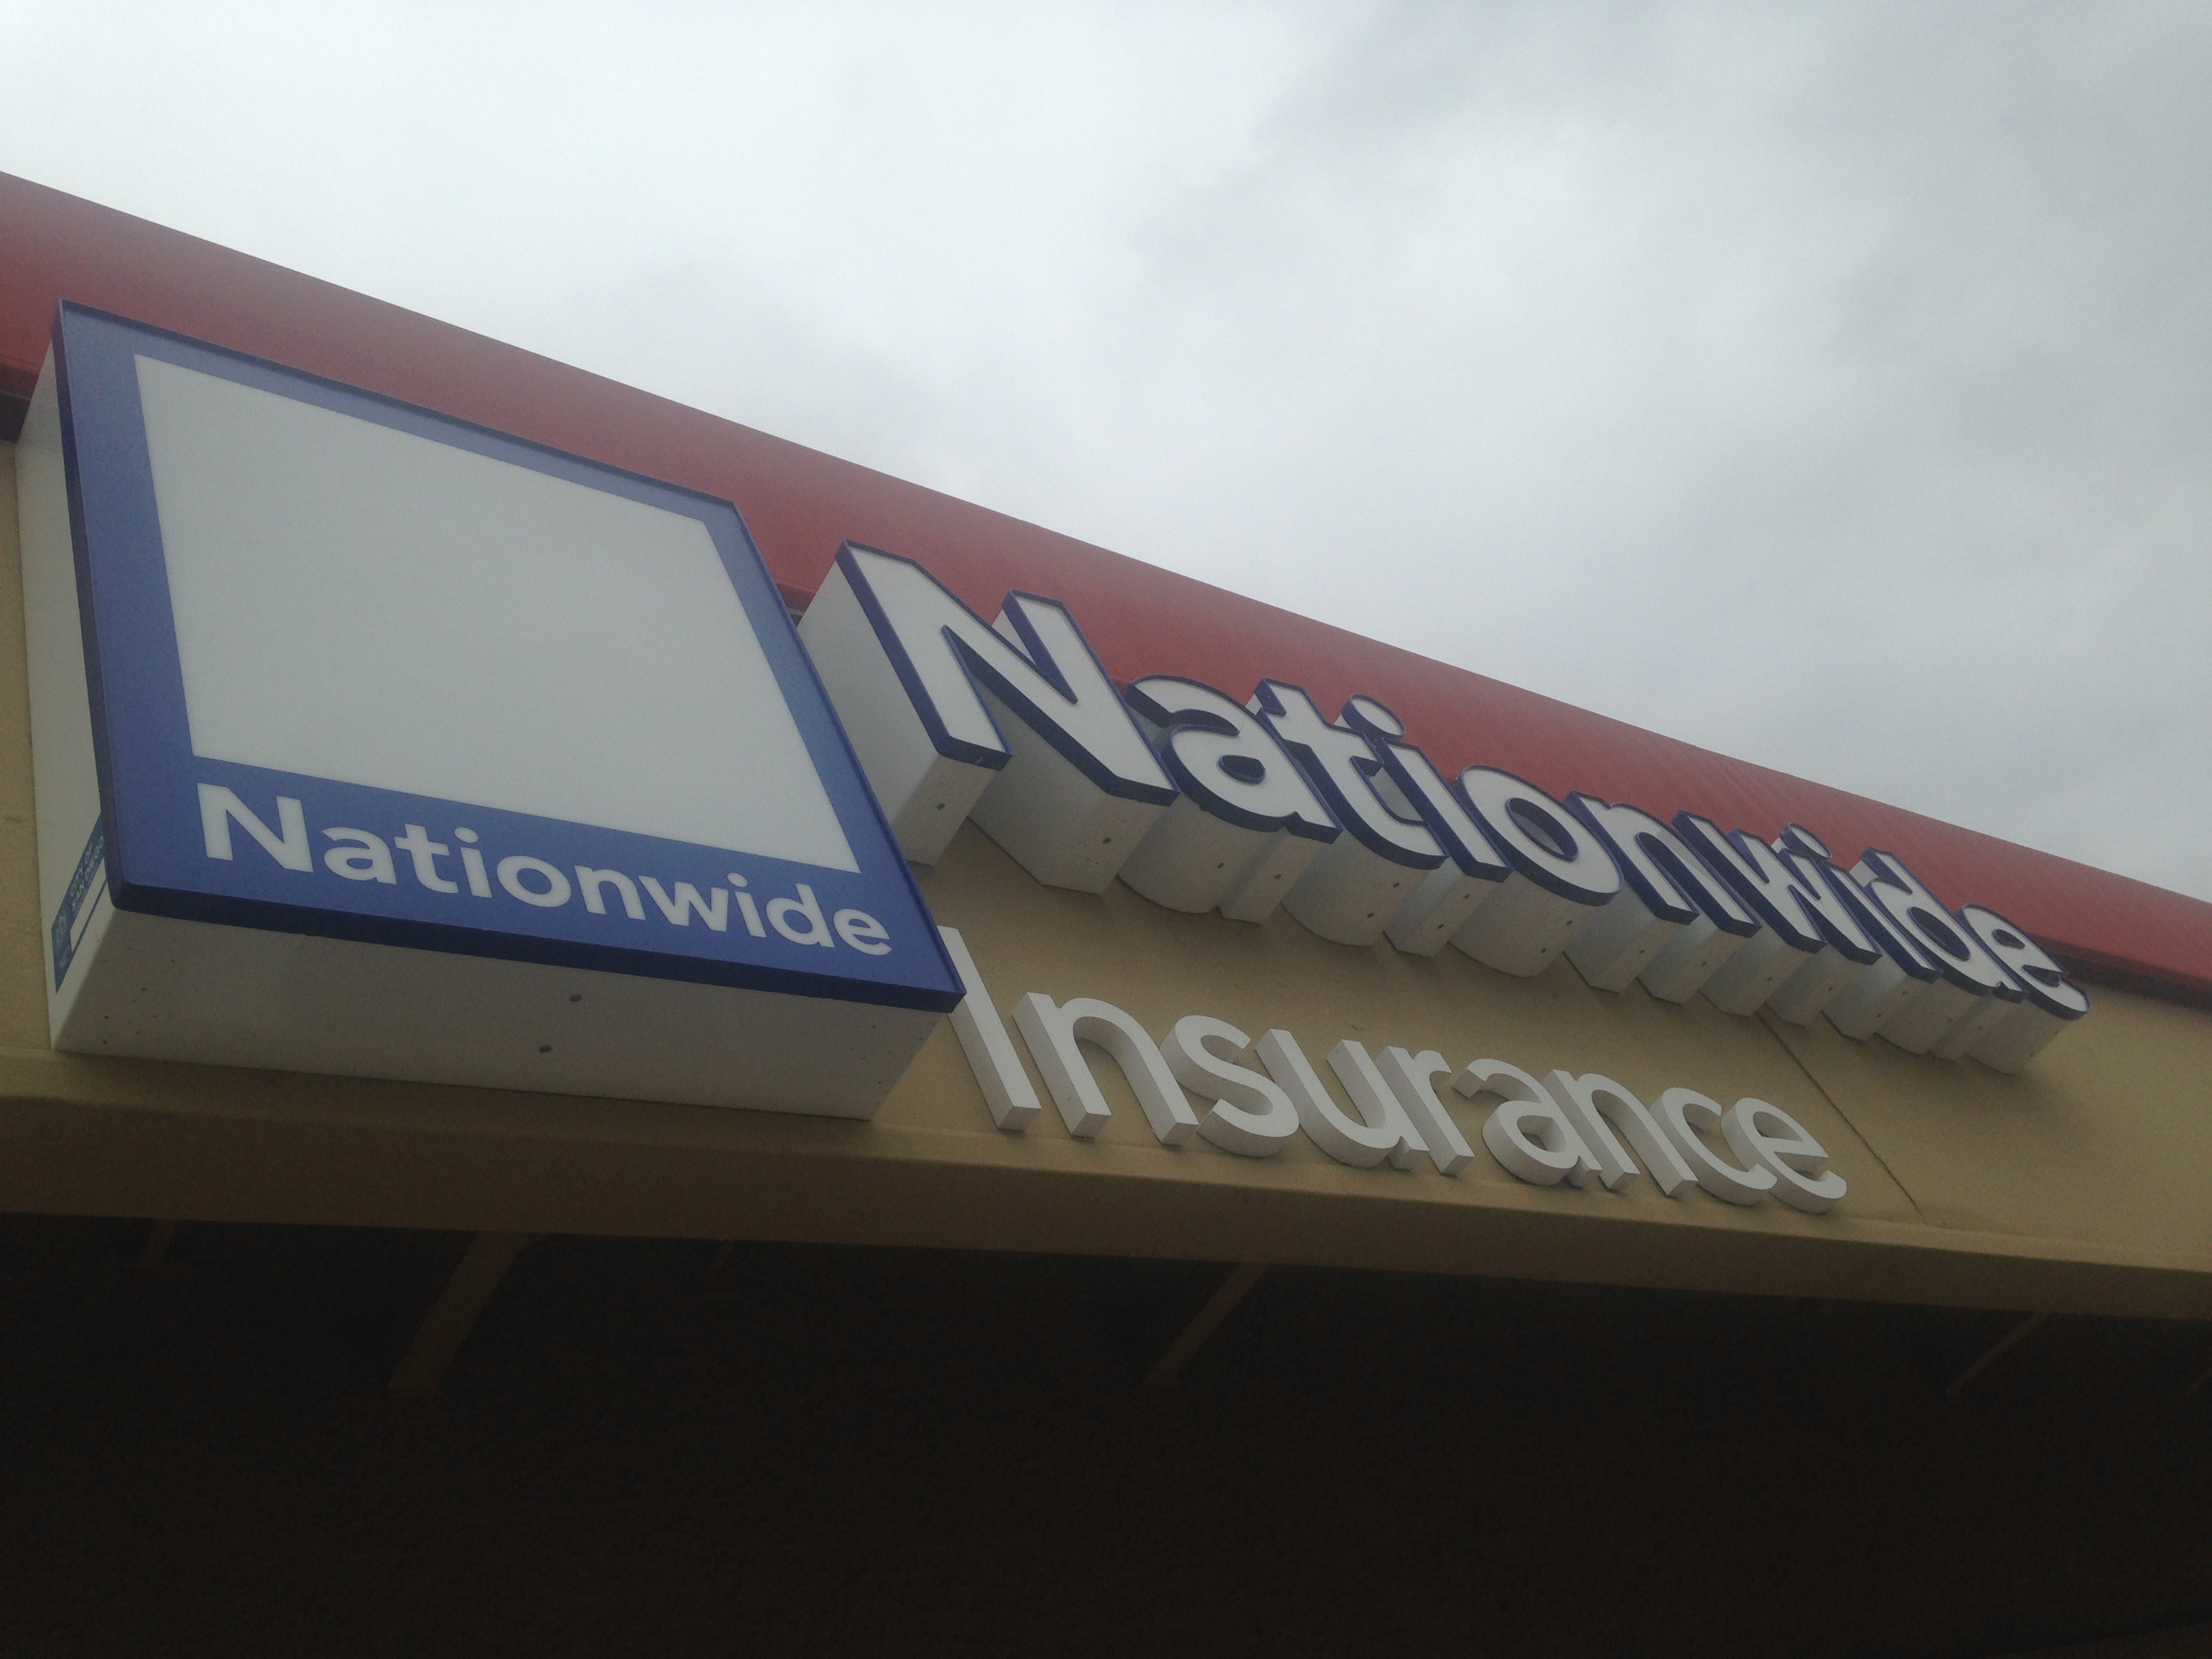 Natiowide Insurance